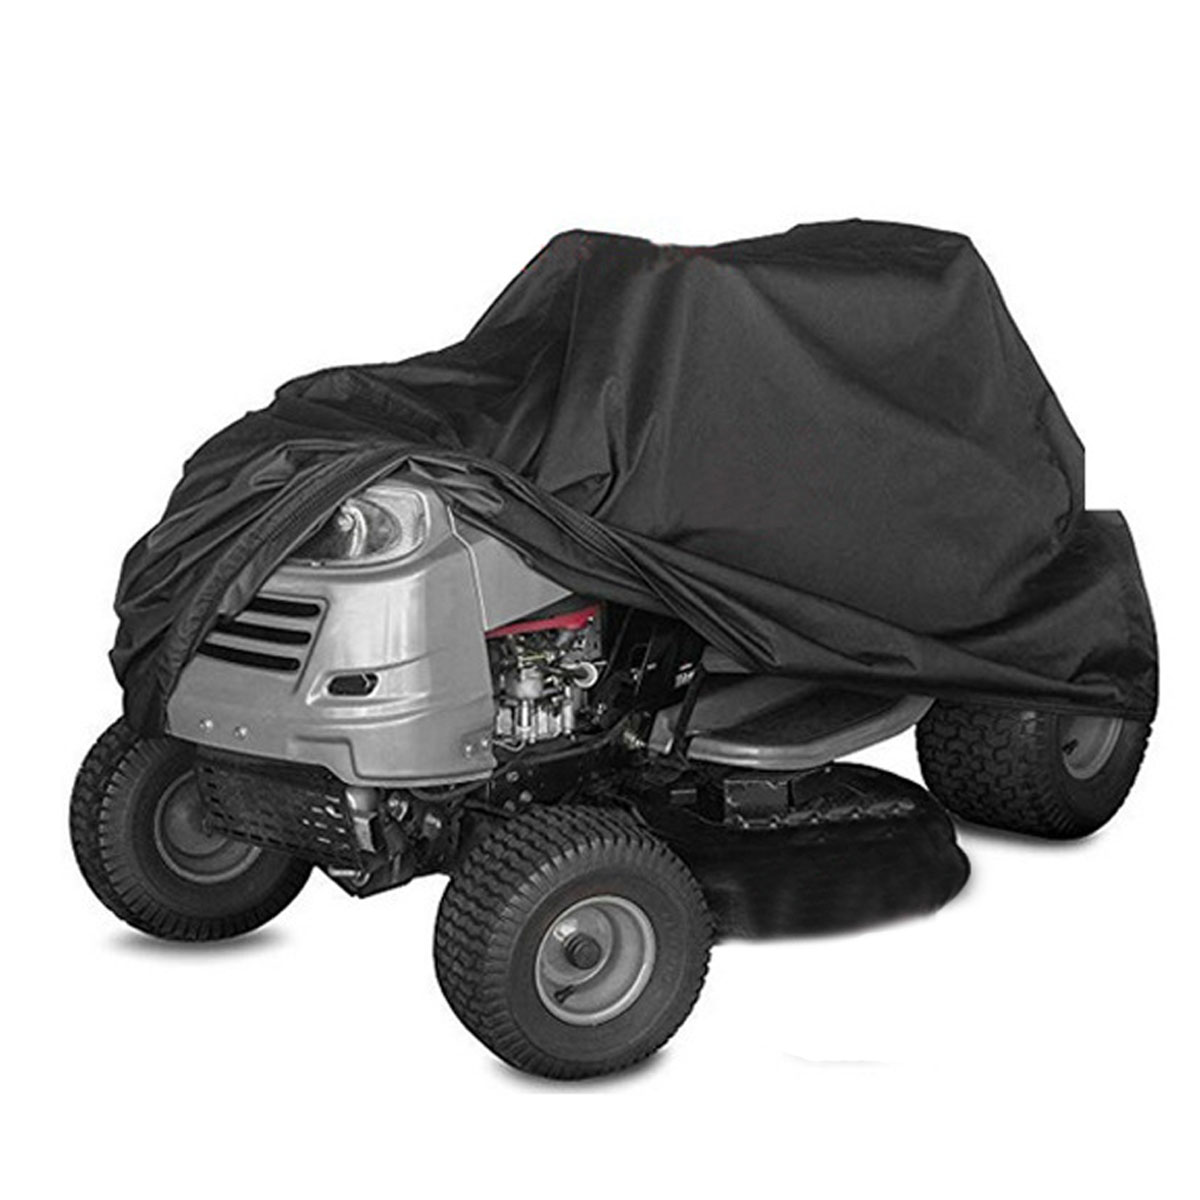 210D ATV Tractor Lawn Mower Motorcycle Furniture Cover Waterproo